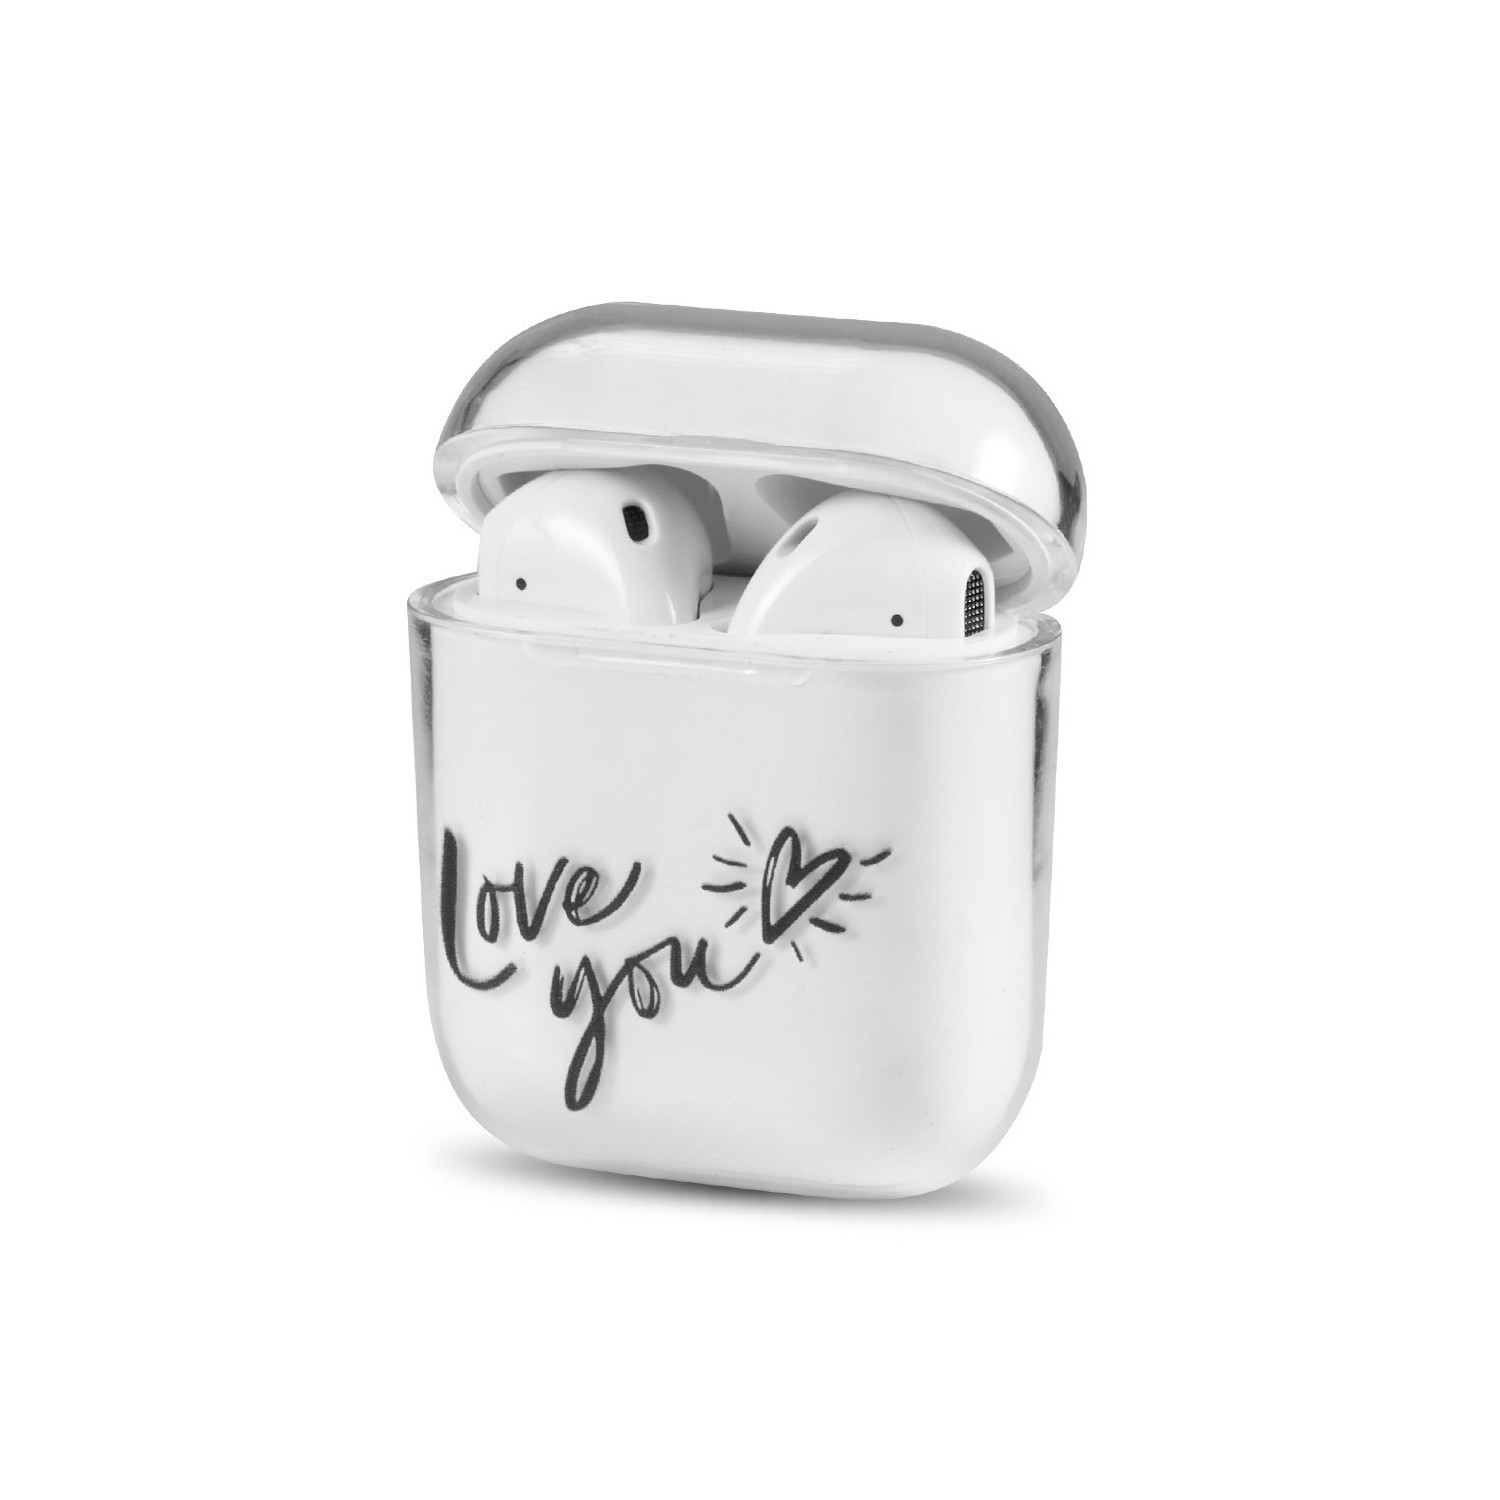 Case compatible for Apple AirPods 1 & 2 - Love